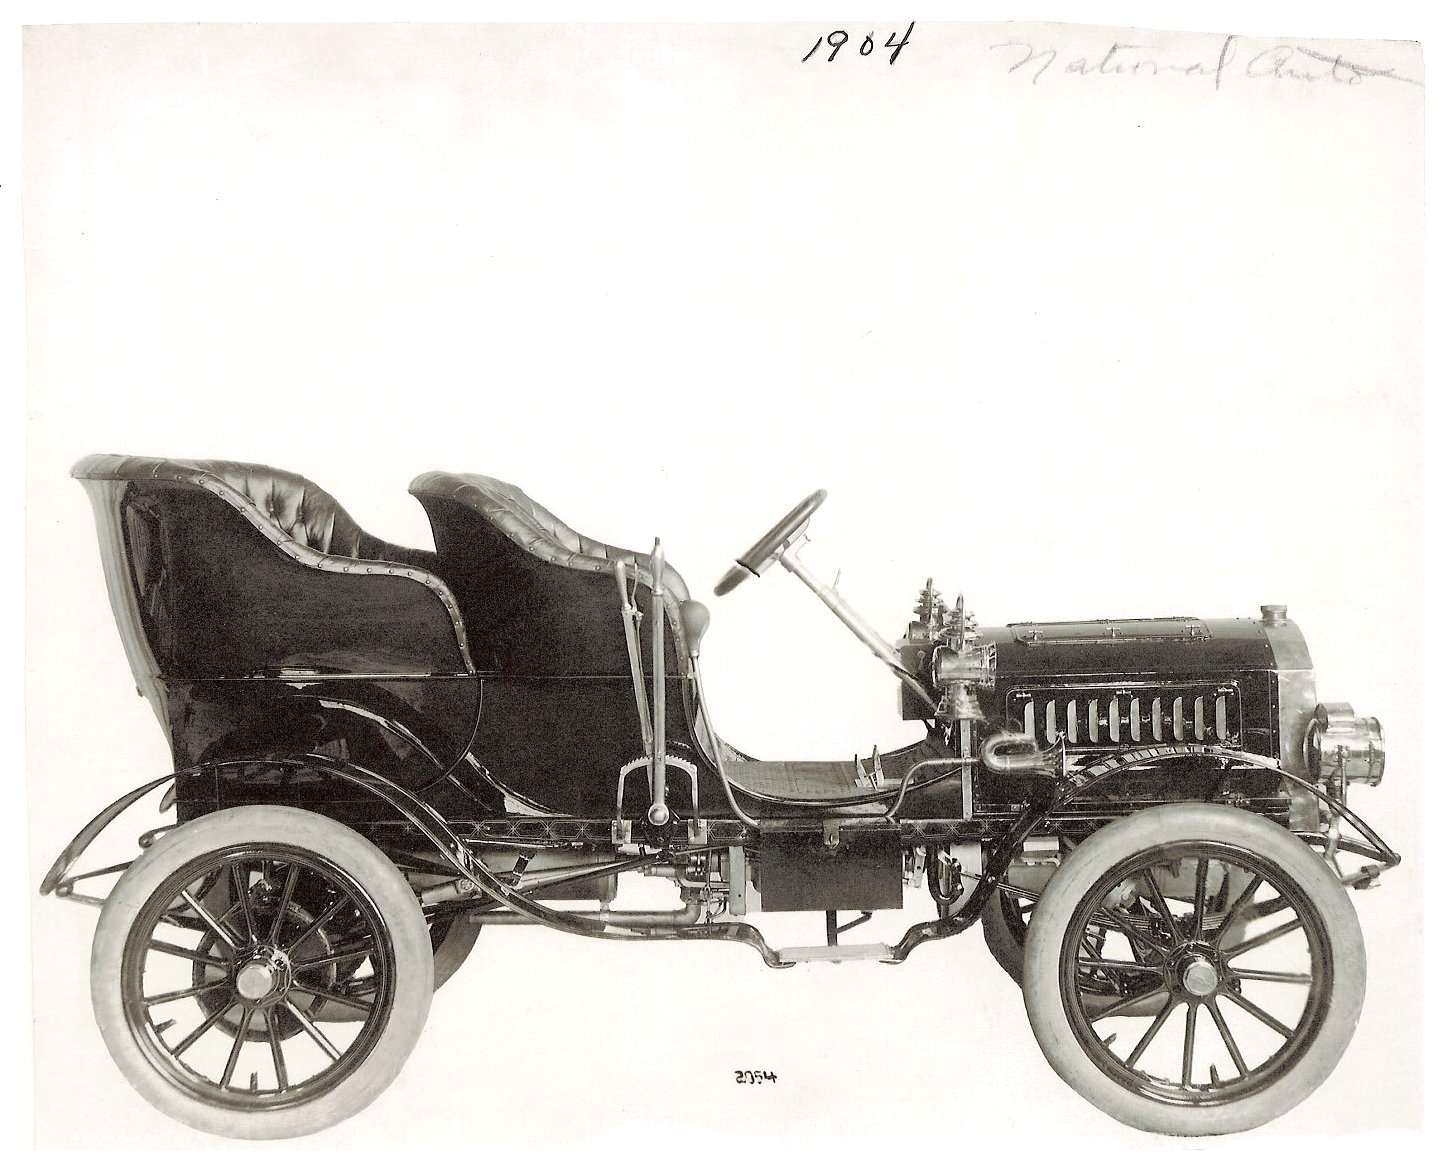 "1904 NATIONAL Gasoline Model ""B"" NATIONAL Motor Vehicle Company of Indianapolis, Indiana 1900-1924 Bass Photo Company Collection 2054 10″x8″ Black & White photograph Indiana Historical Society"